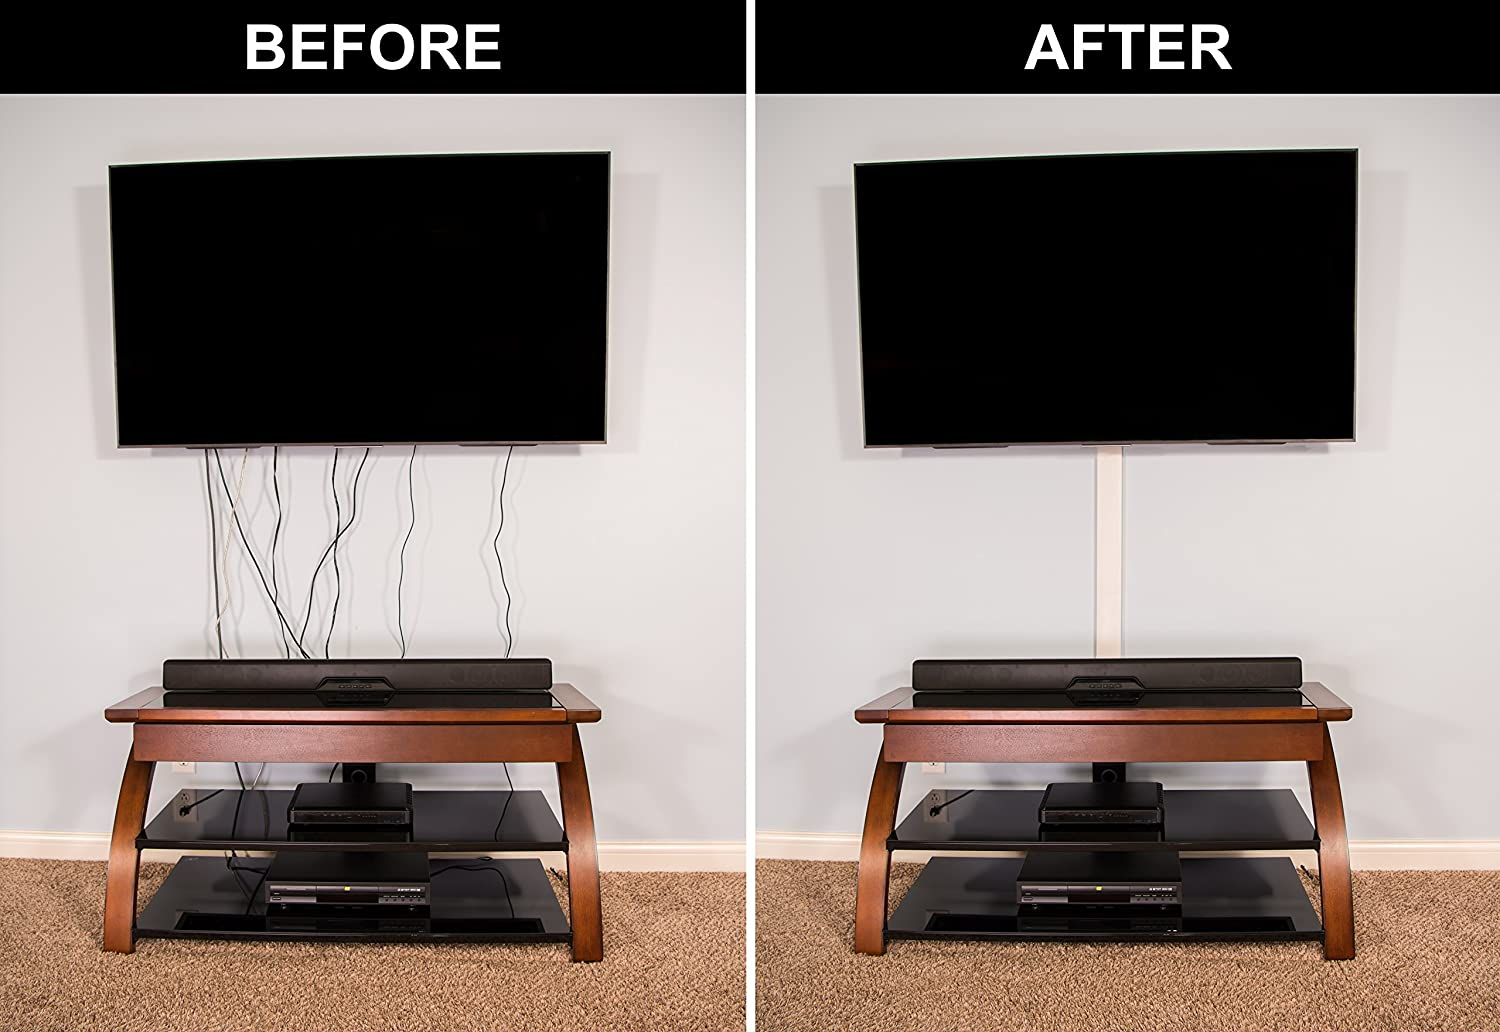 Amazon.com: TV Cord Cover Conceals Cables, Cords, or Wires, 32 inch ...